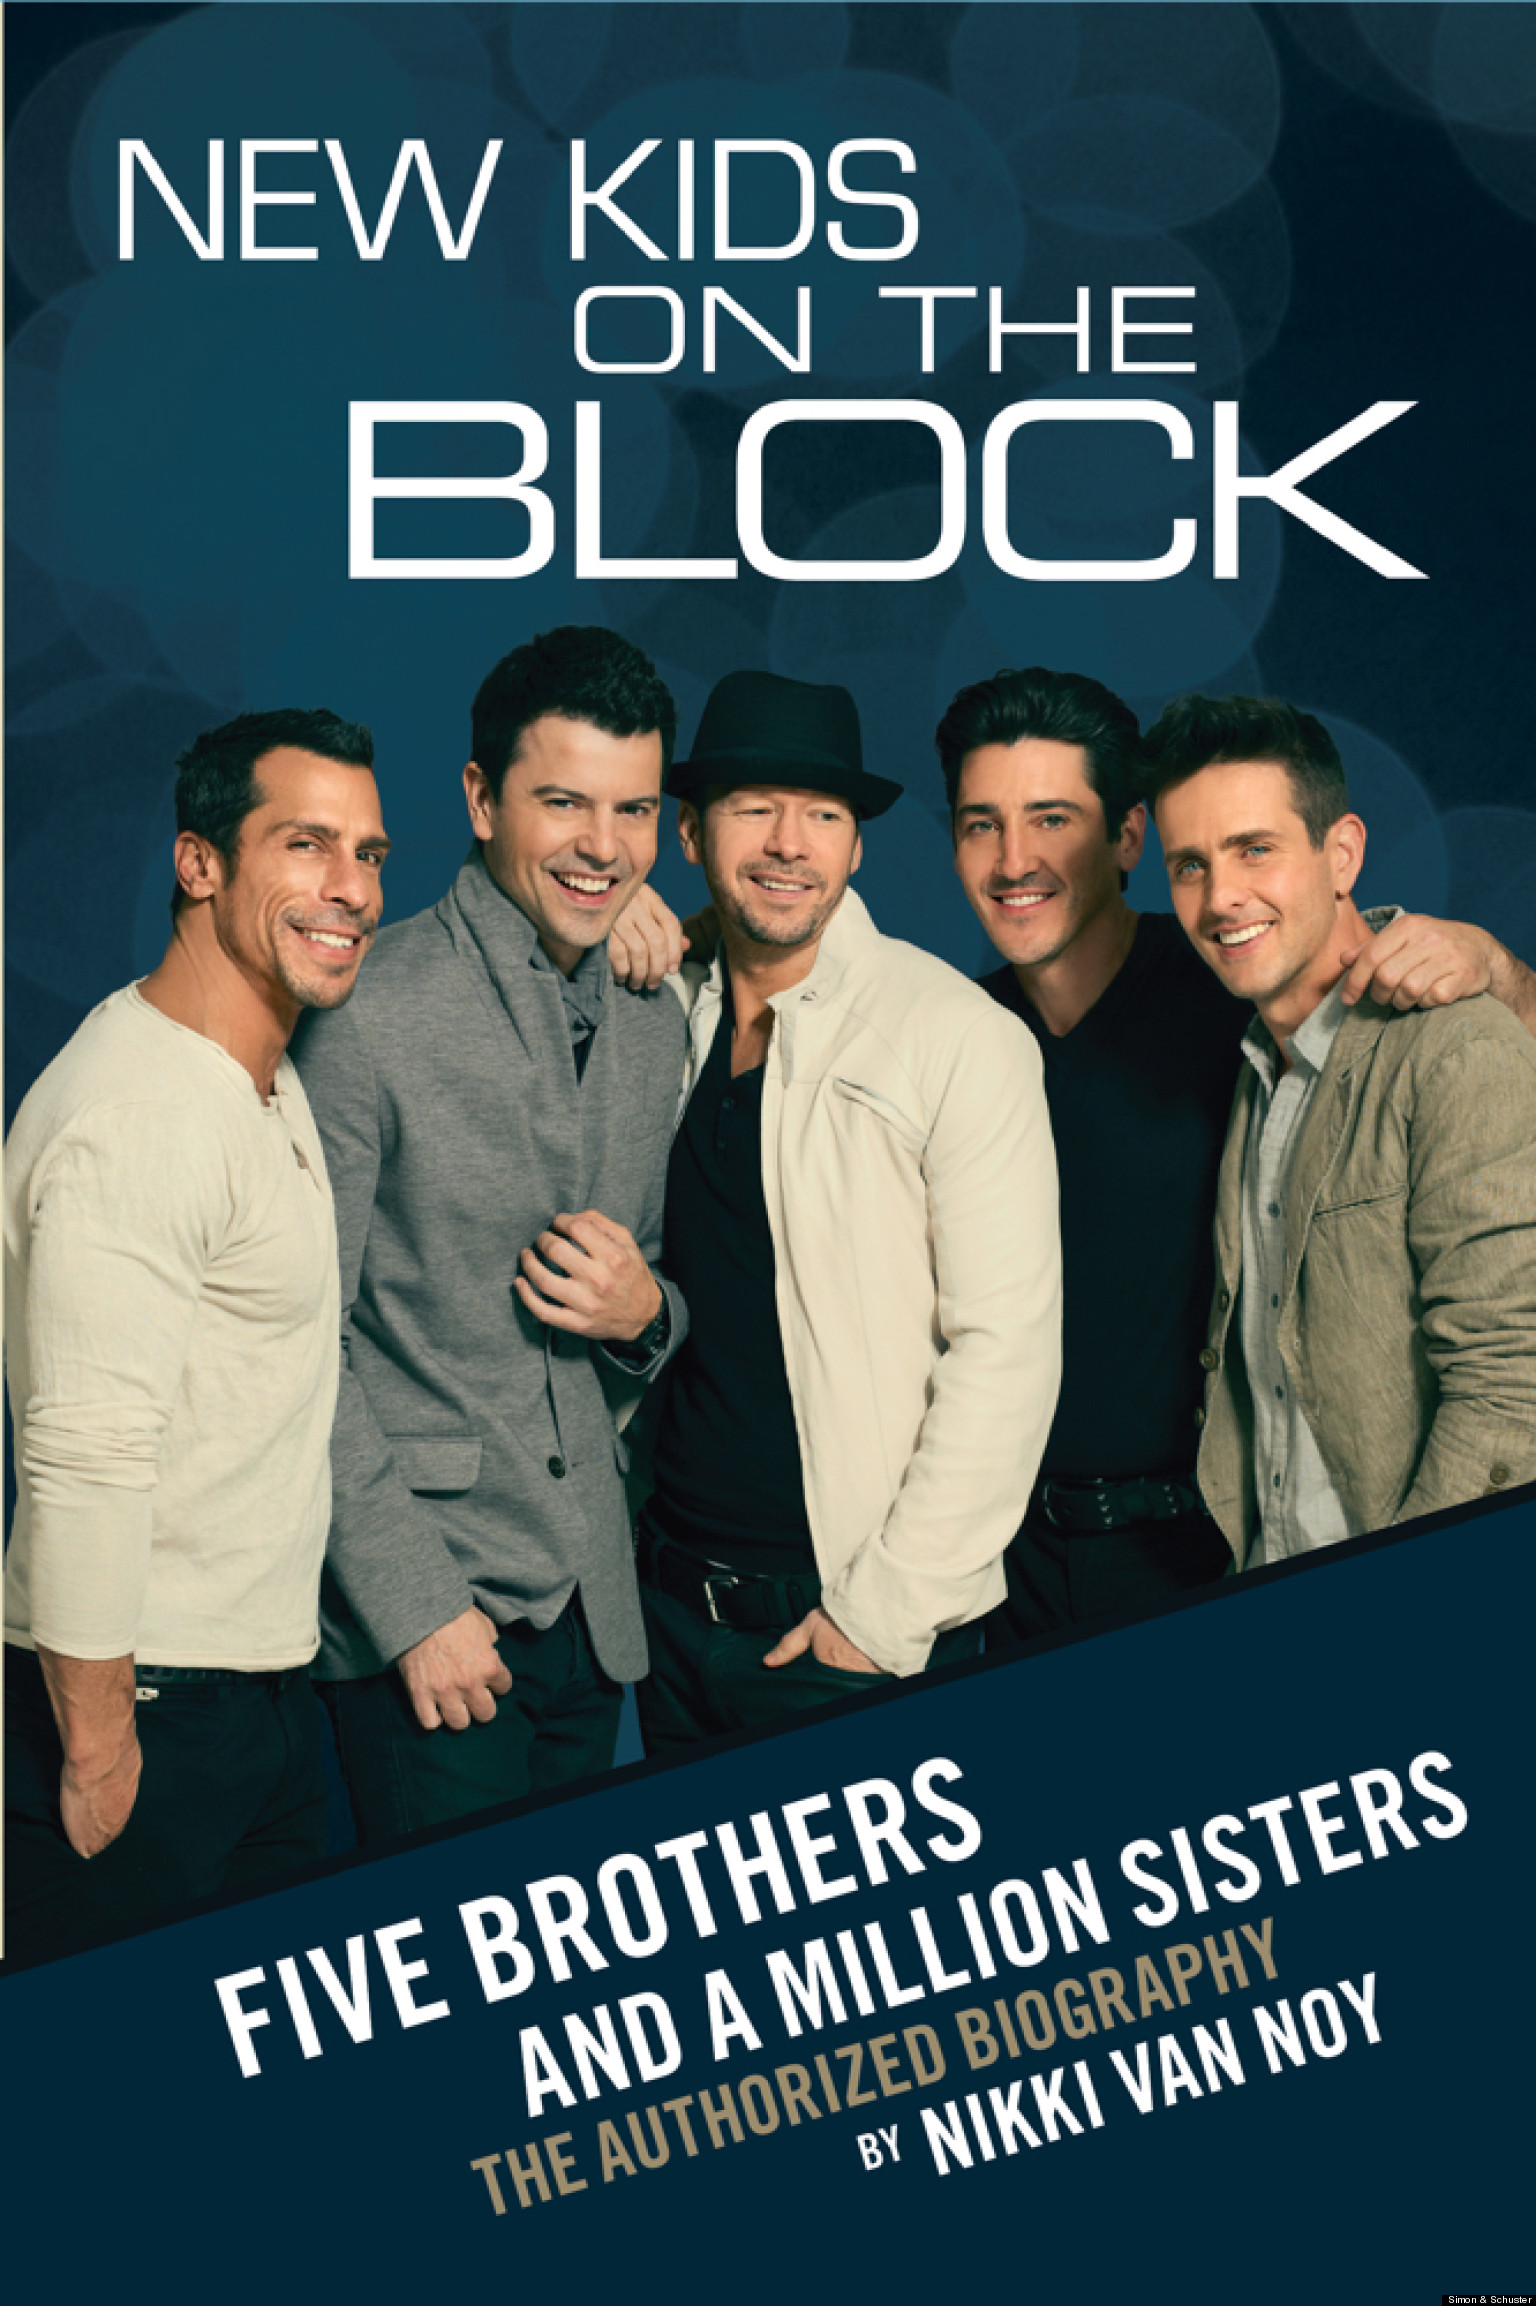 New Kids On The Block Biography Chronicles Boy Band's Rise